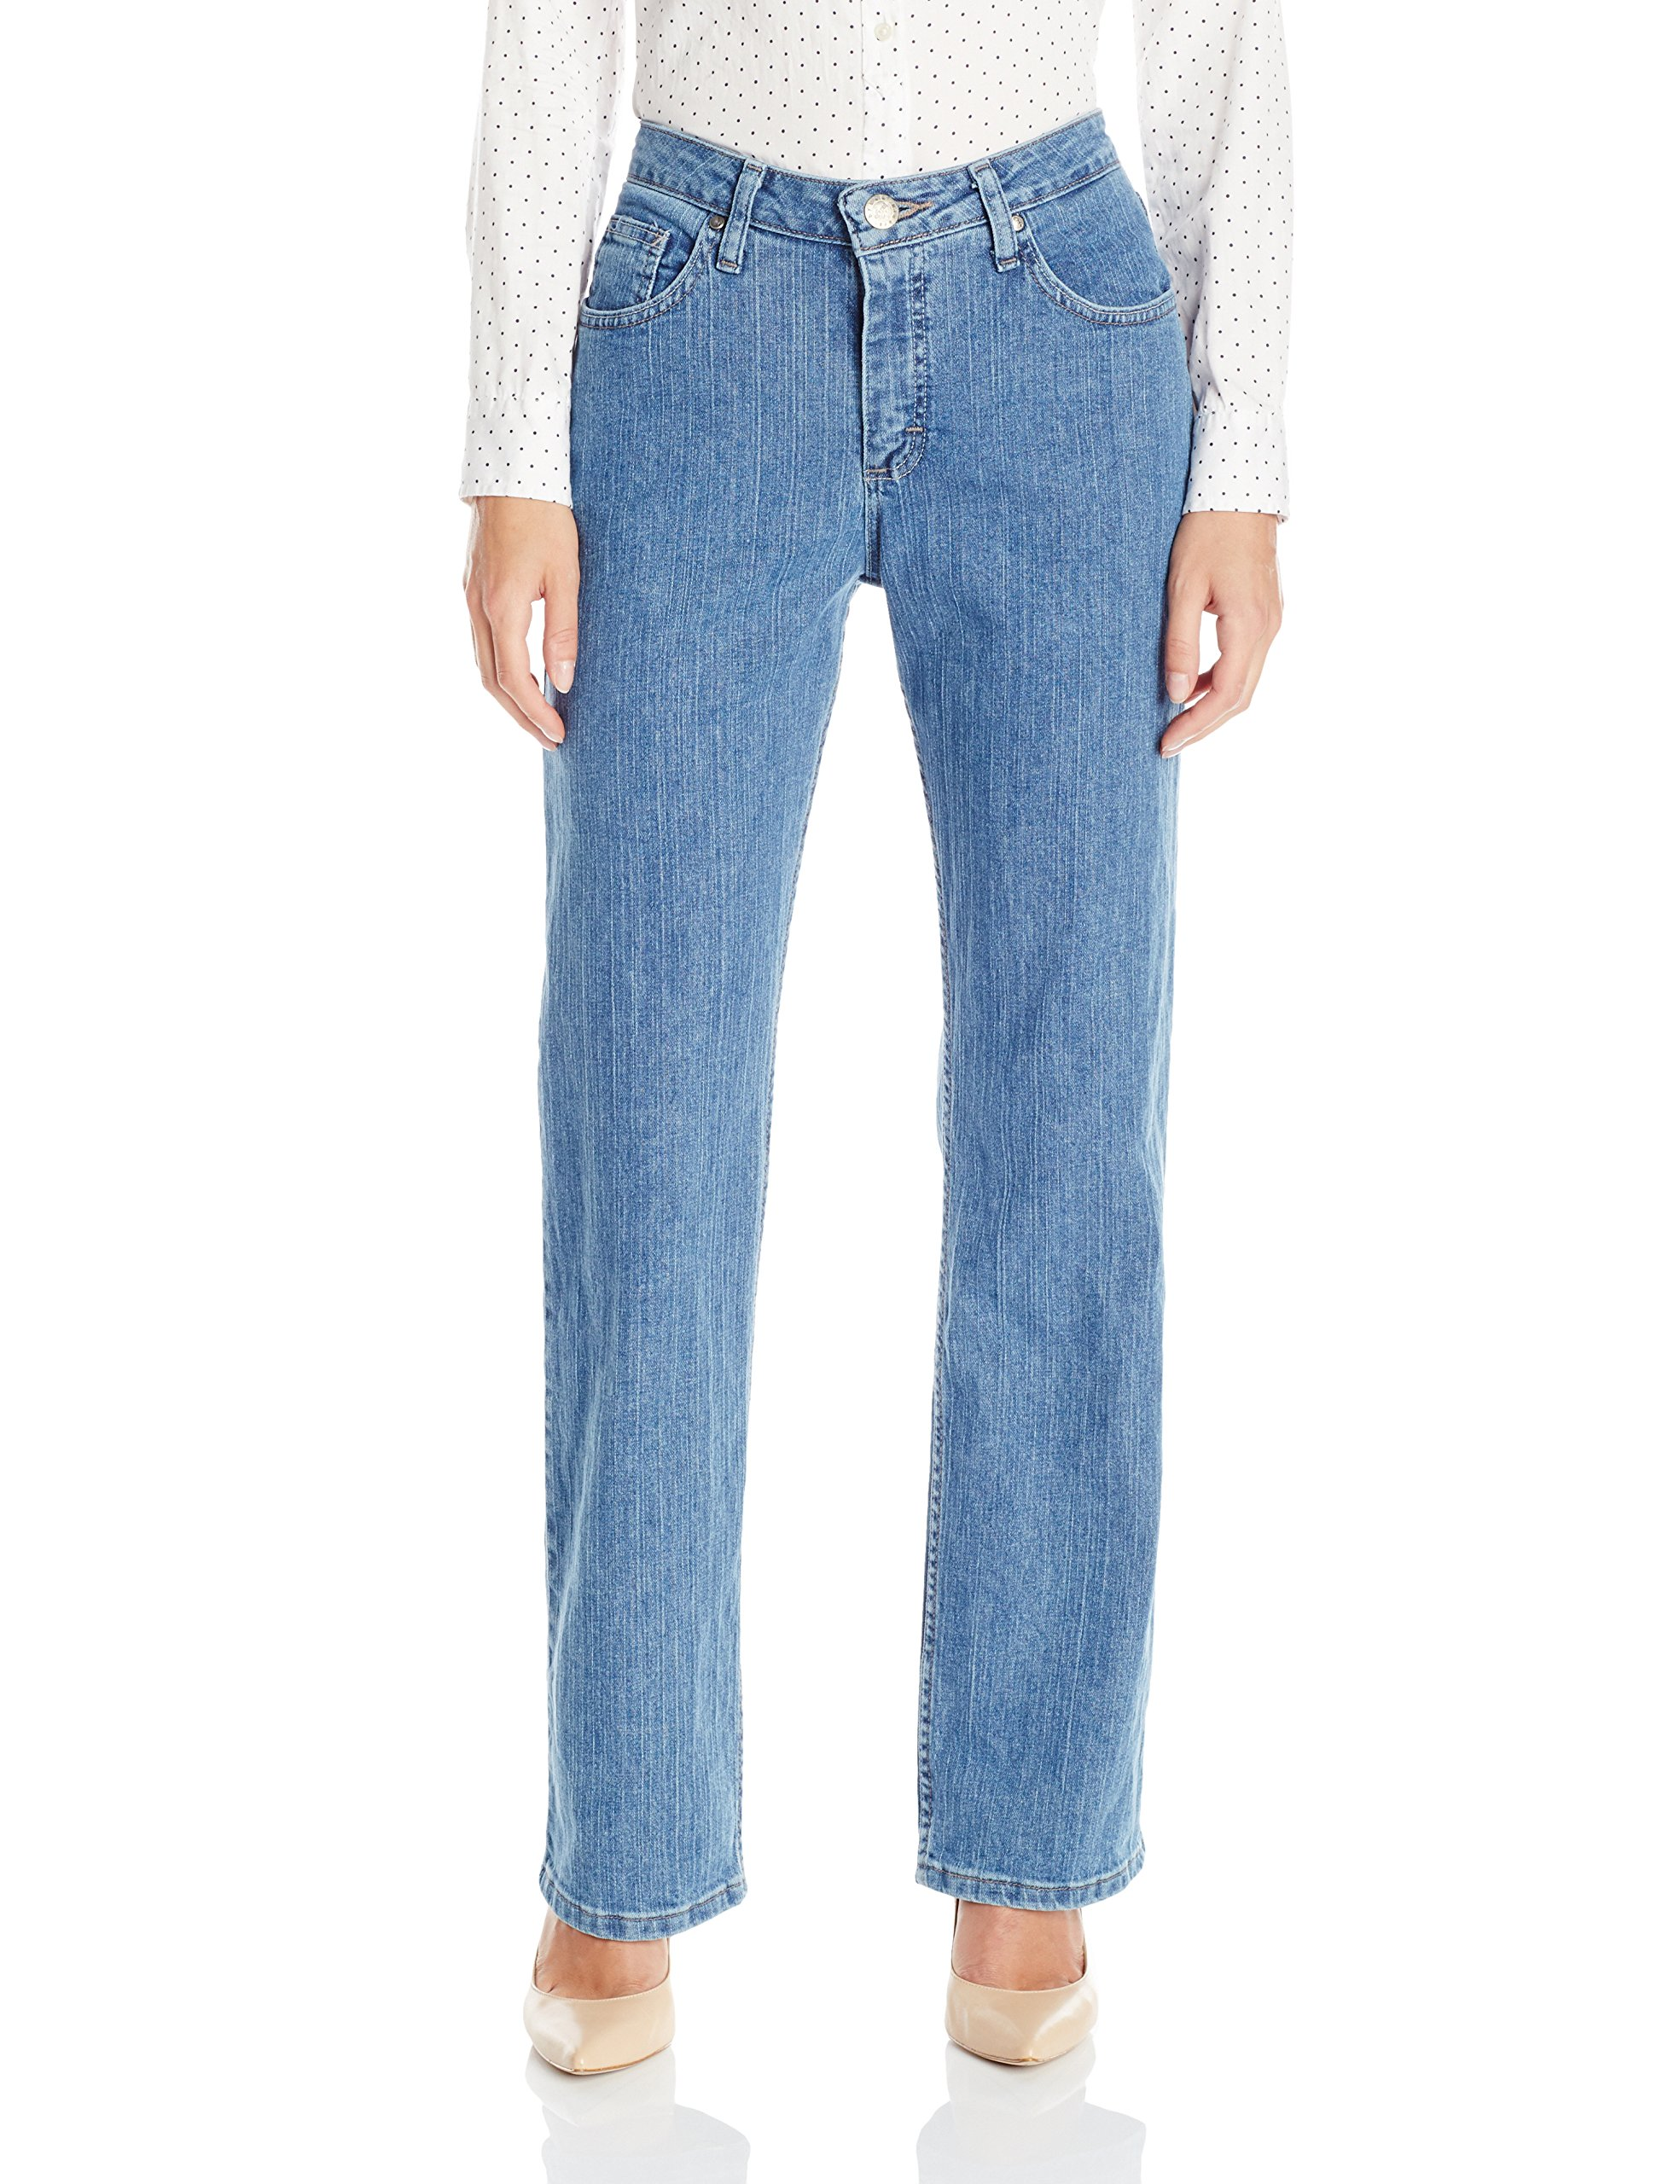 Riders by Lee Indigo Women's Relaxed Fit Straight Leg Jean,Light,8